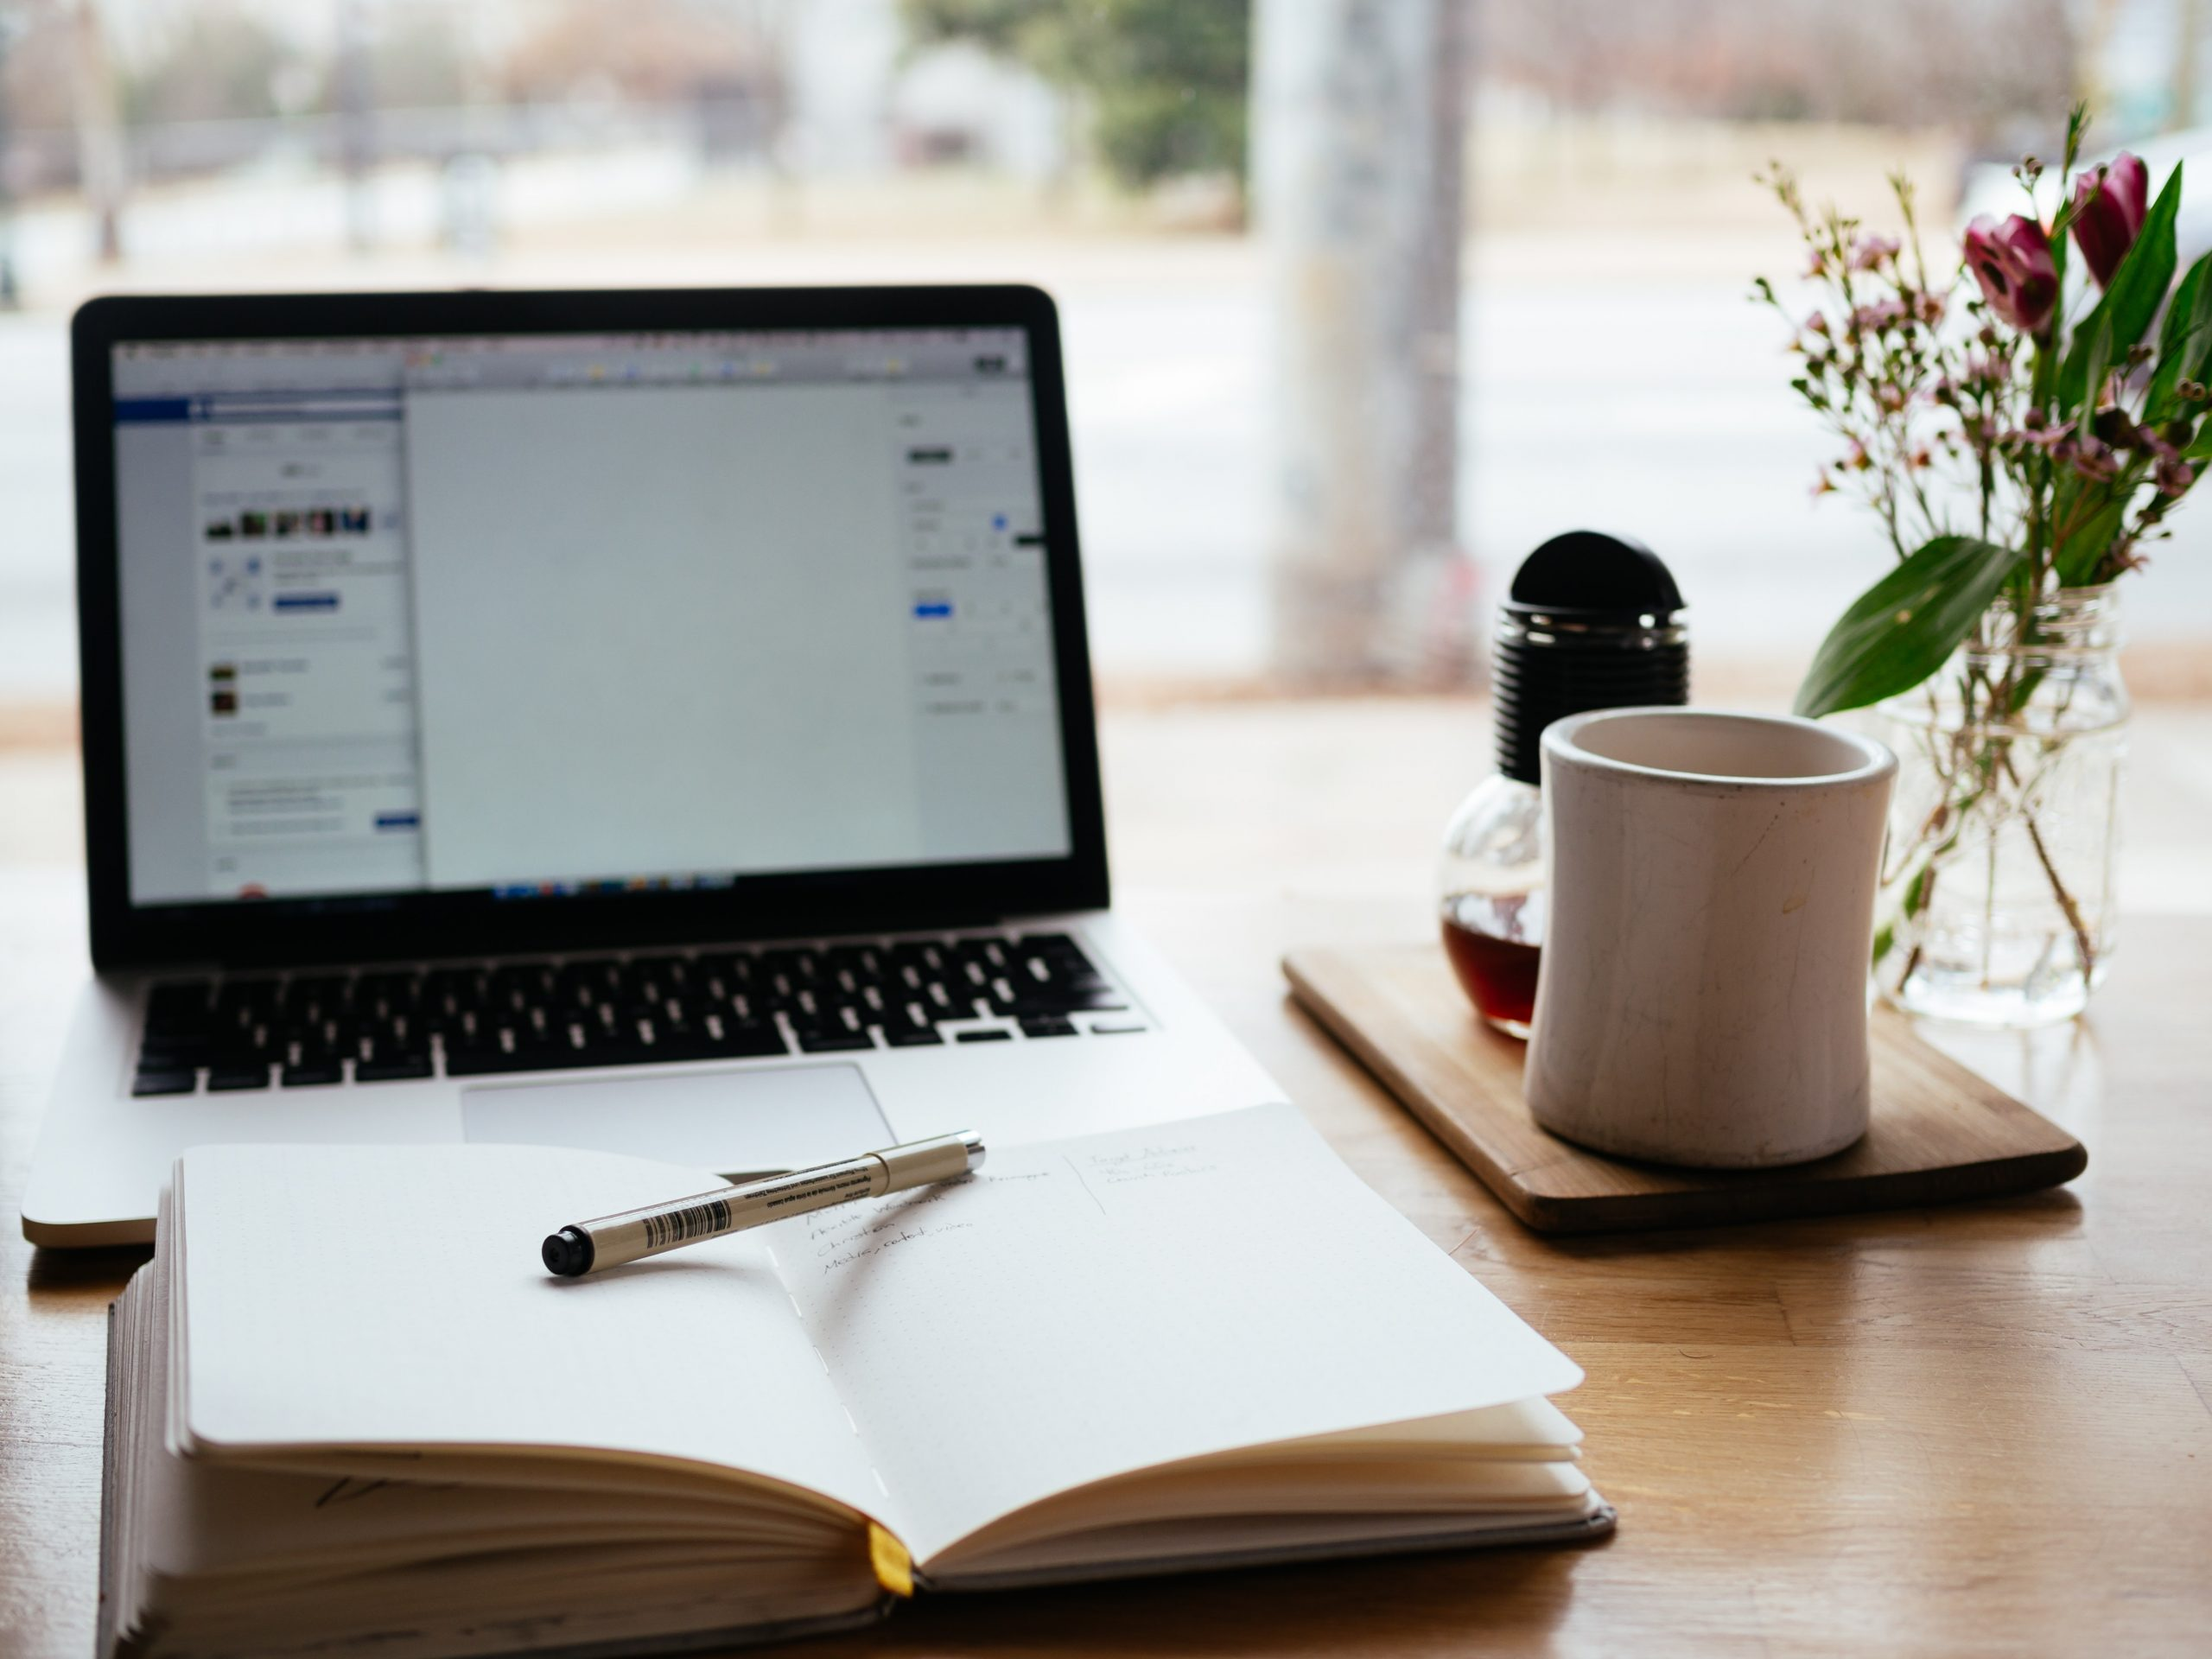 Get paid for your writing. Picture of a desk with a laptop, notebook and pen, mug, and plant. Photo by Nick Morrison on Unsplash.